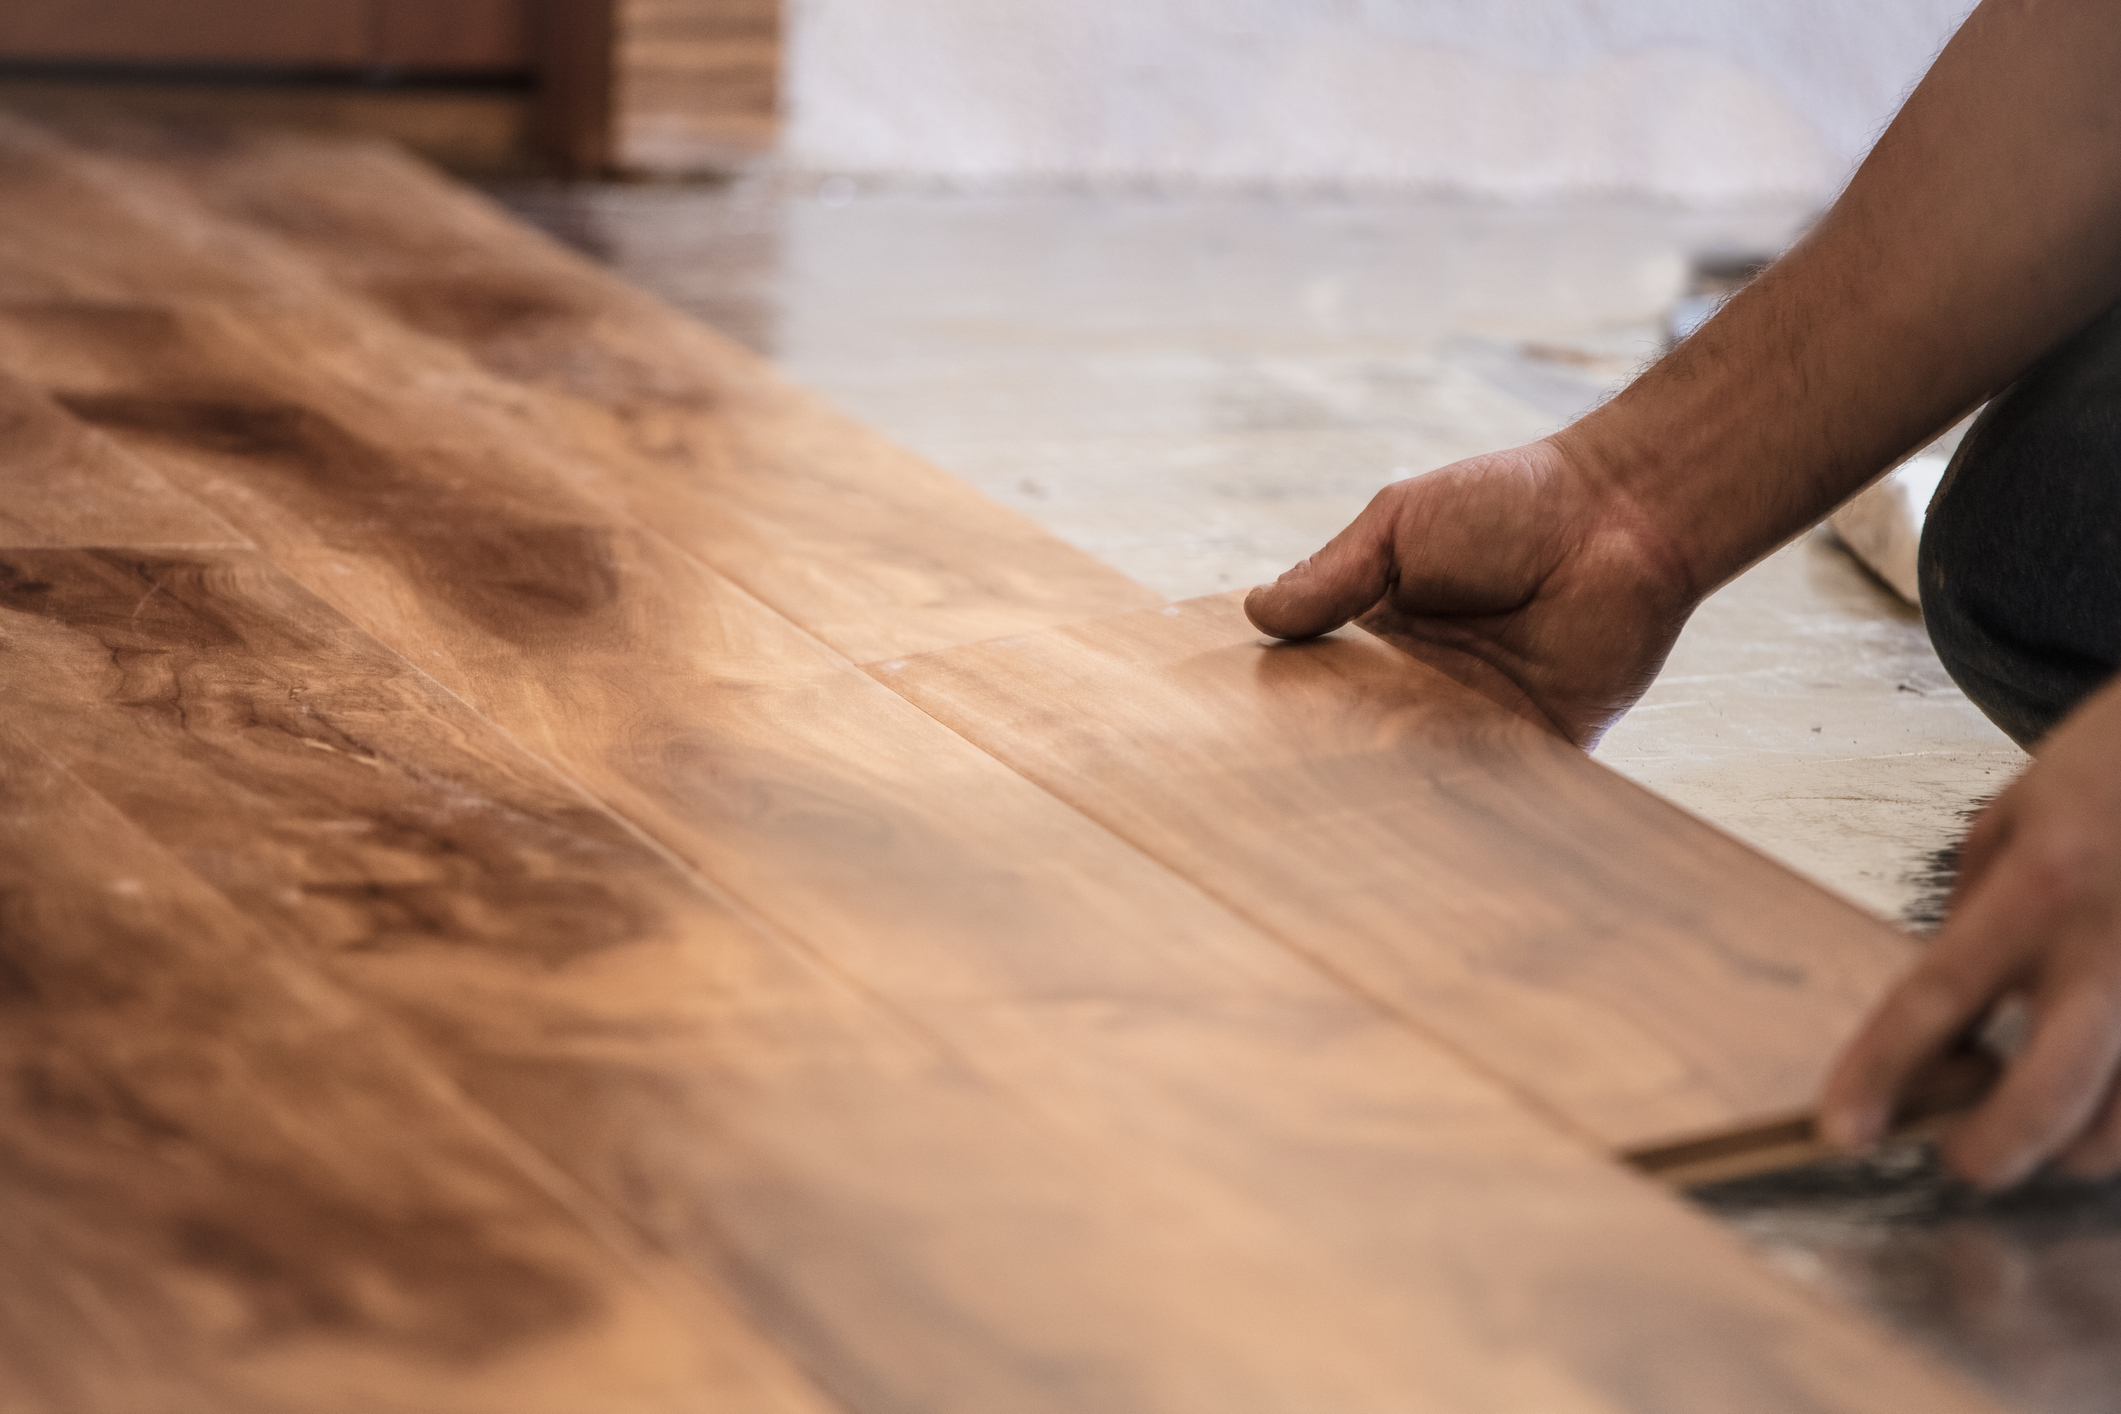 - What to choose depends mostly on what kind of subfloor you have.